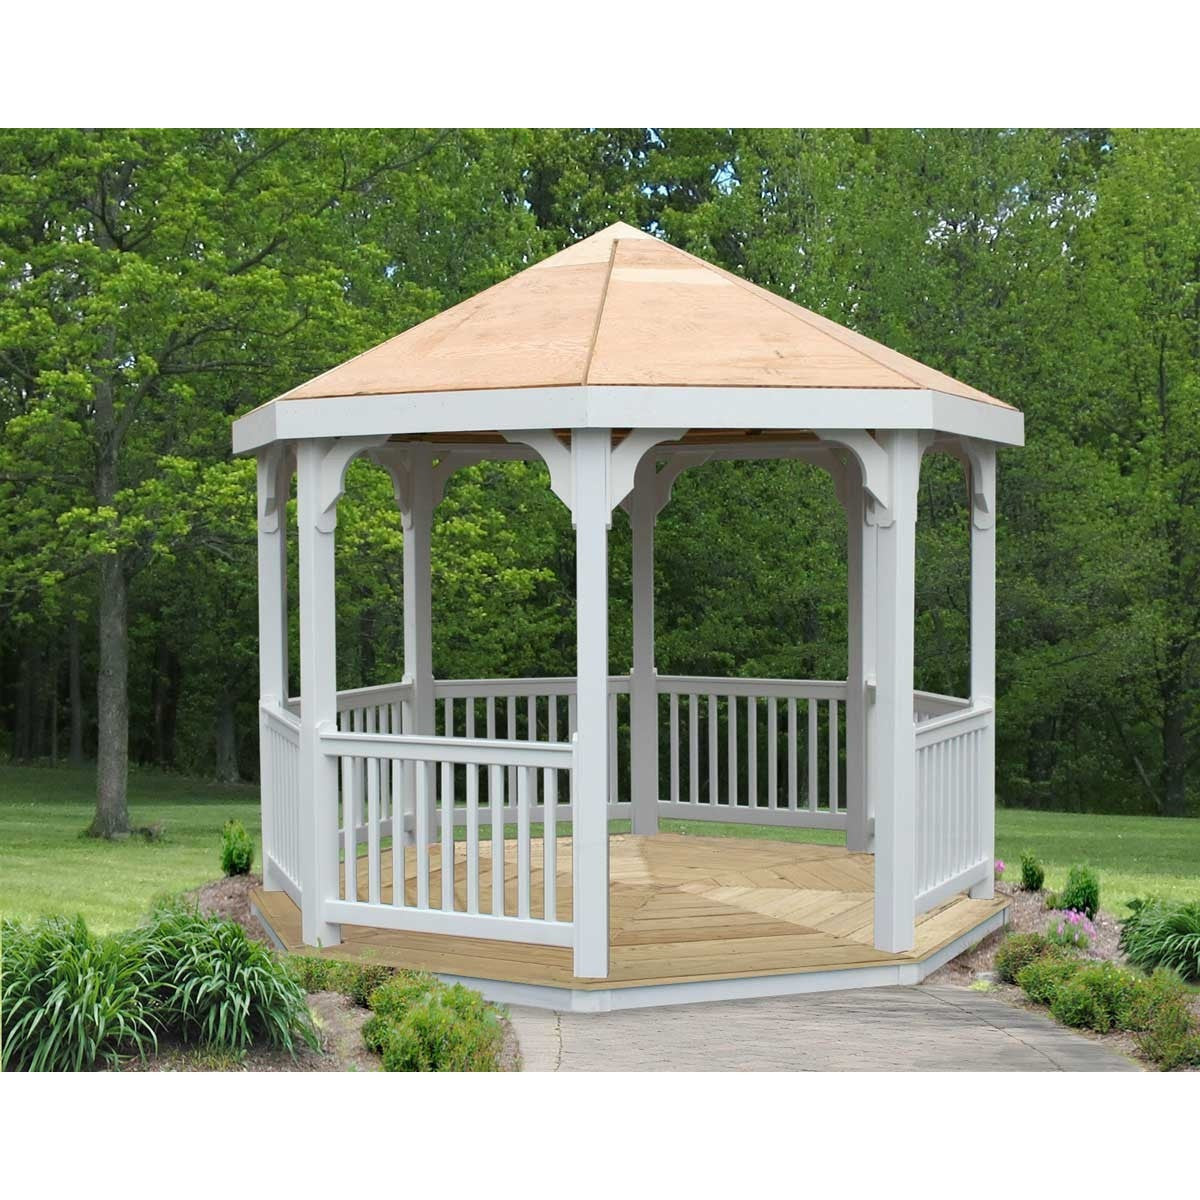 Creekvine Designs 10' Vinyl Gazebo - Swings and More